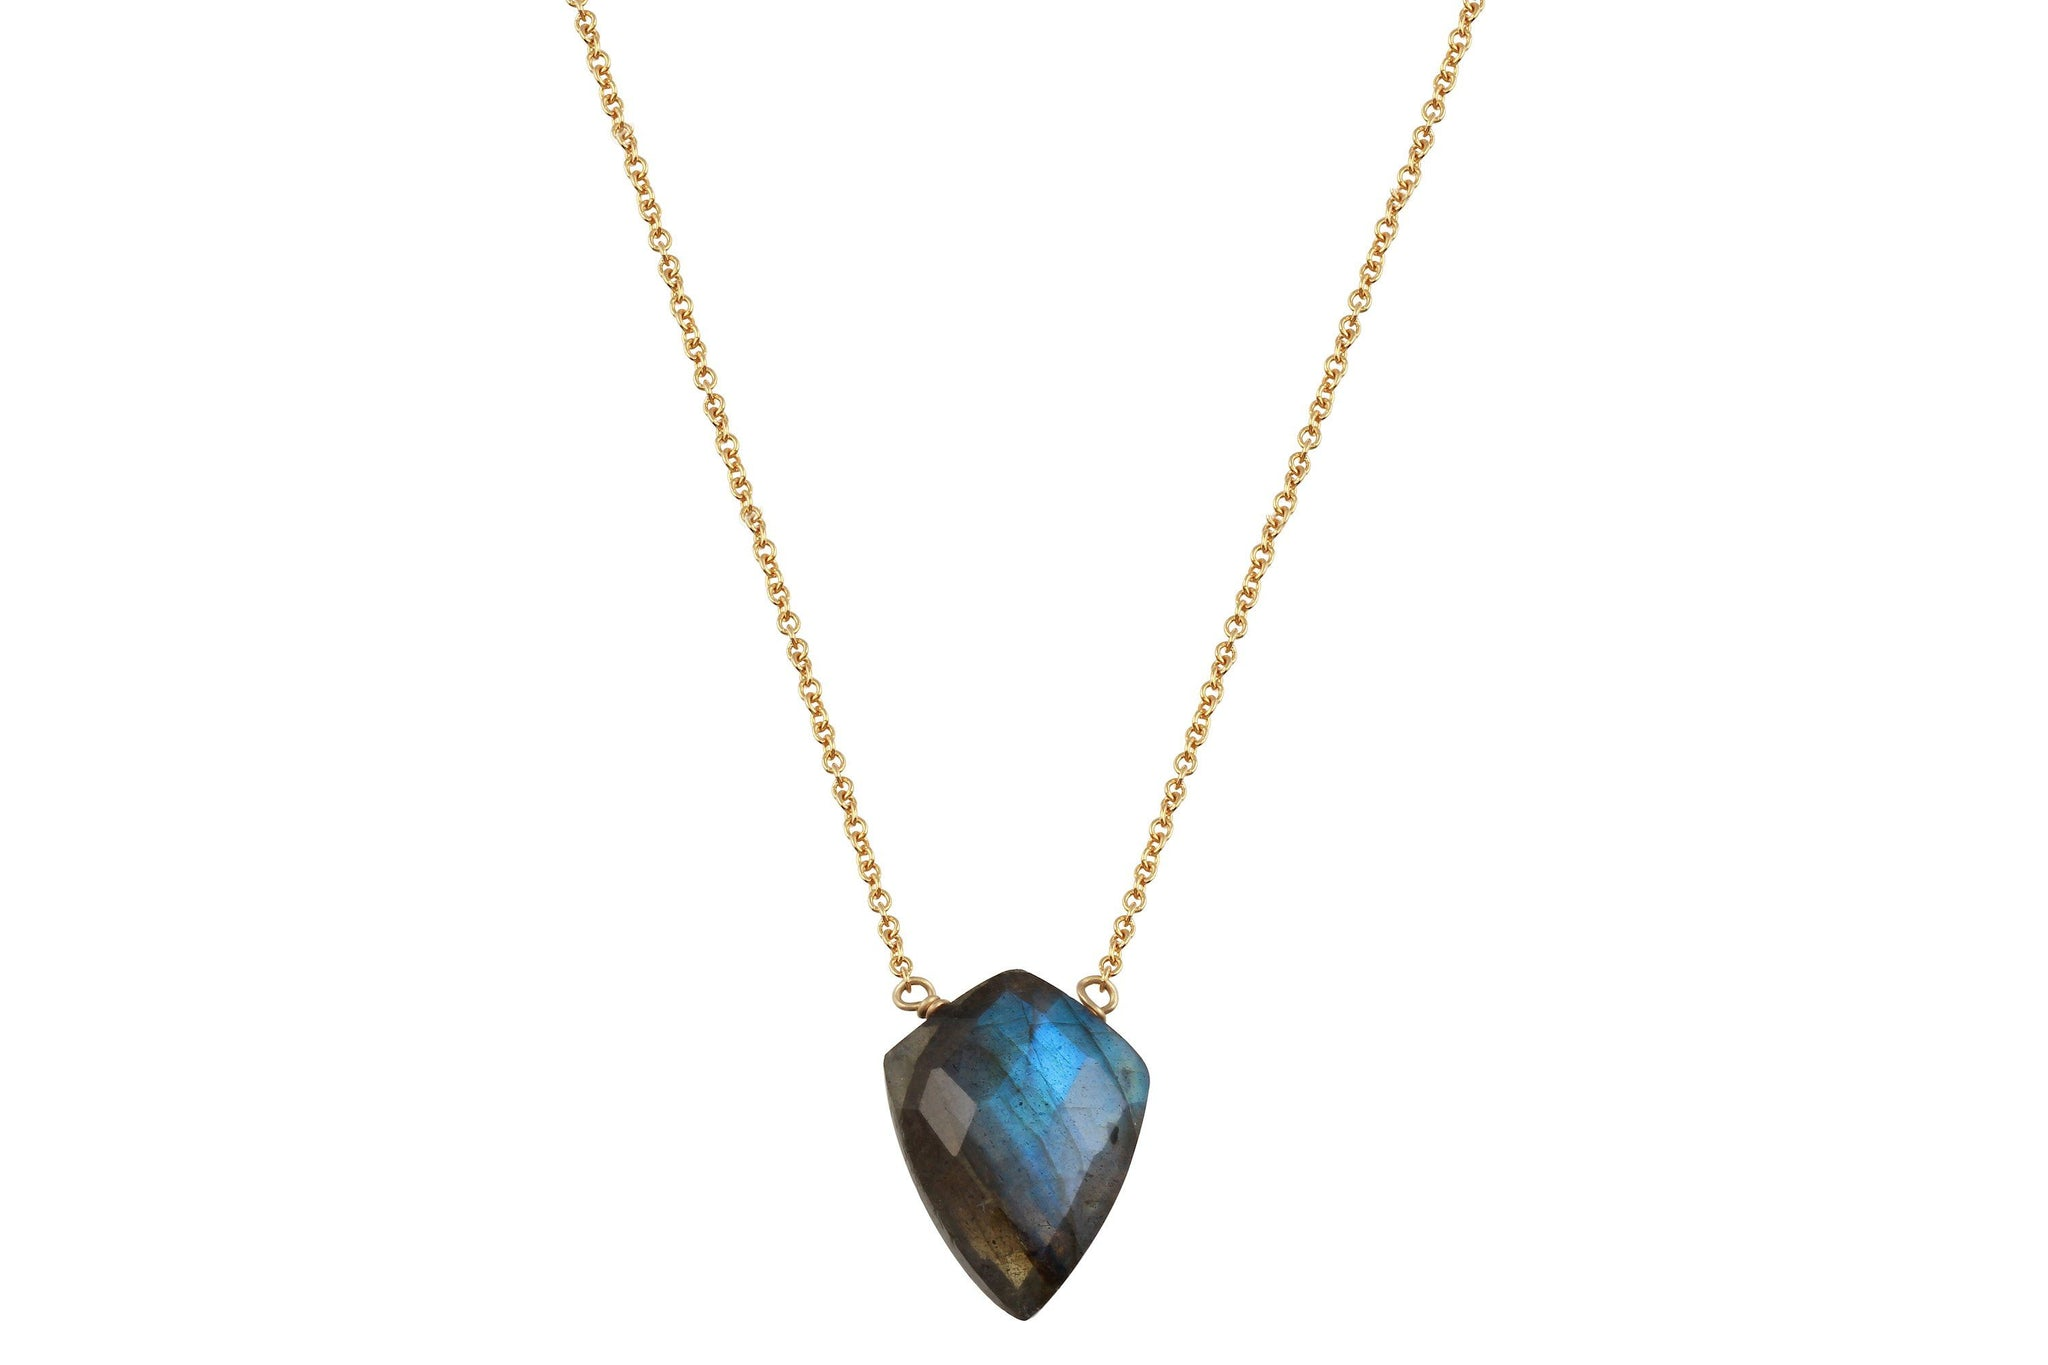 Labradorite shield 14k yellow gold filled necklace